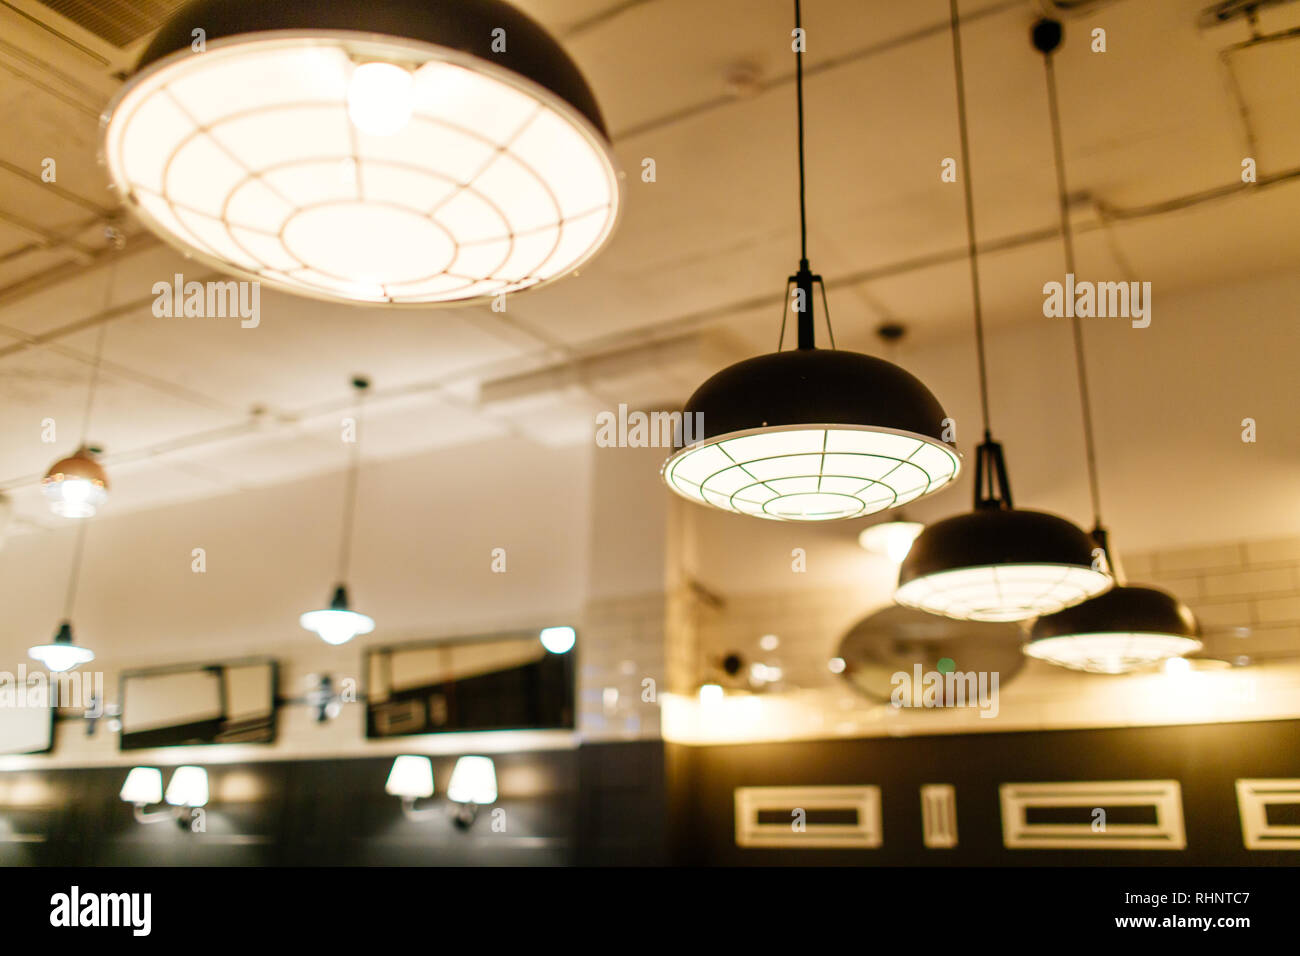 vintage light decorate on the wall background Stock Photo